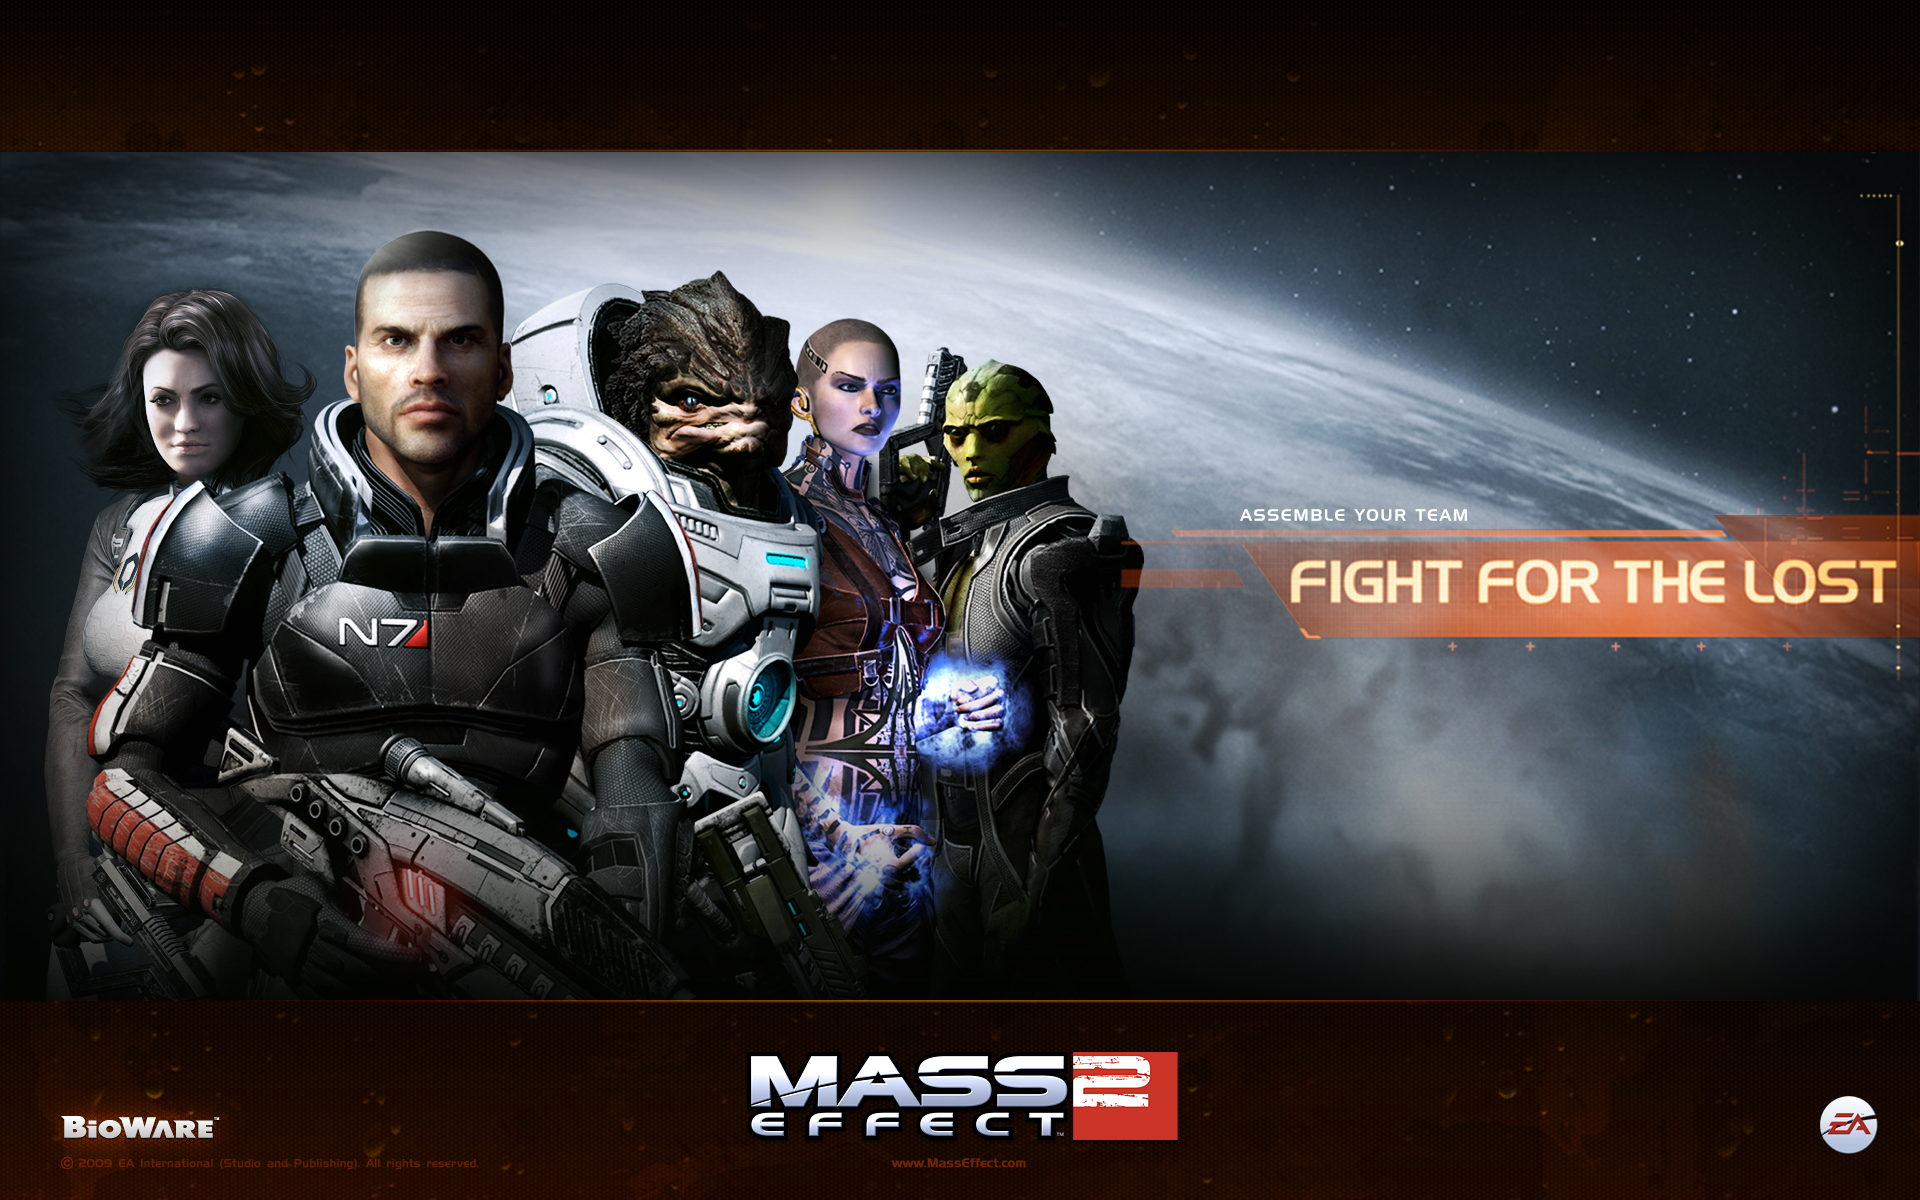 Mass Effect 2 wallpaper